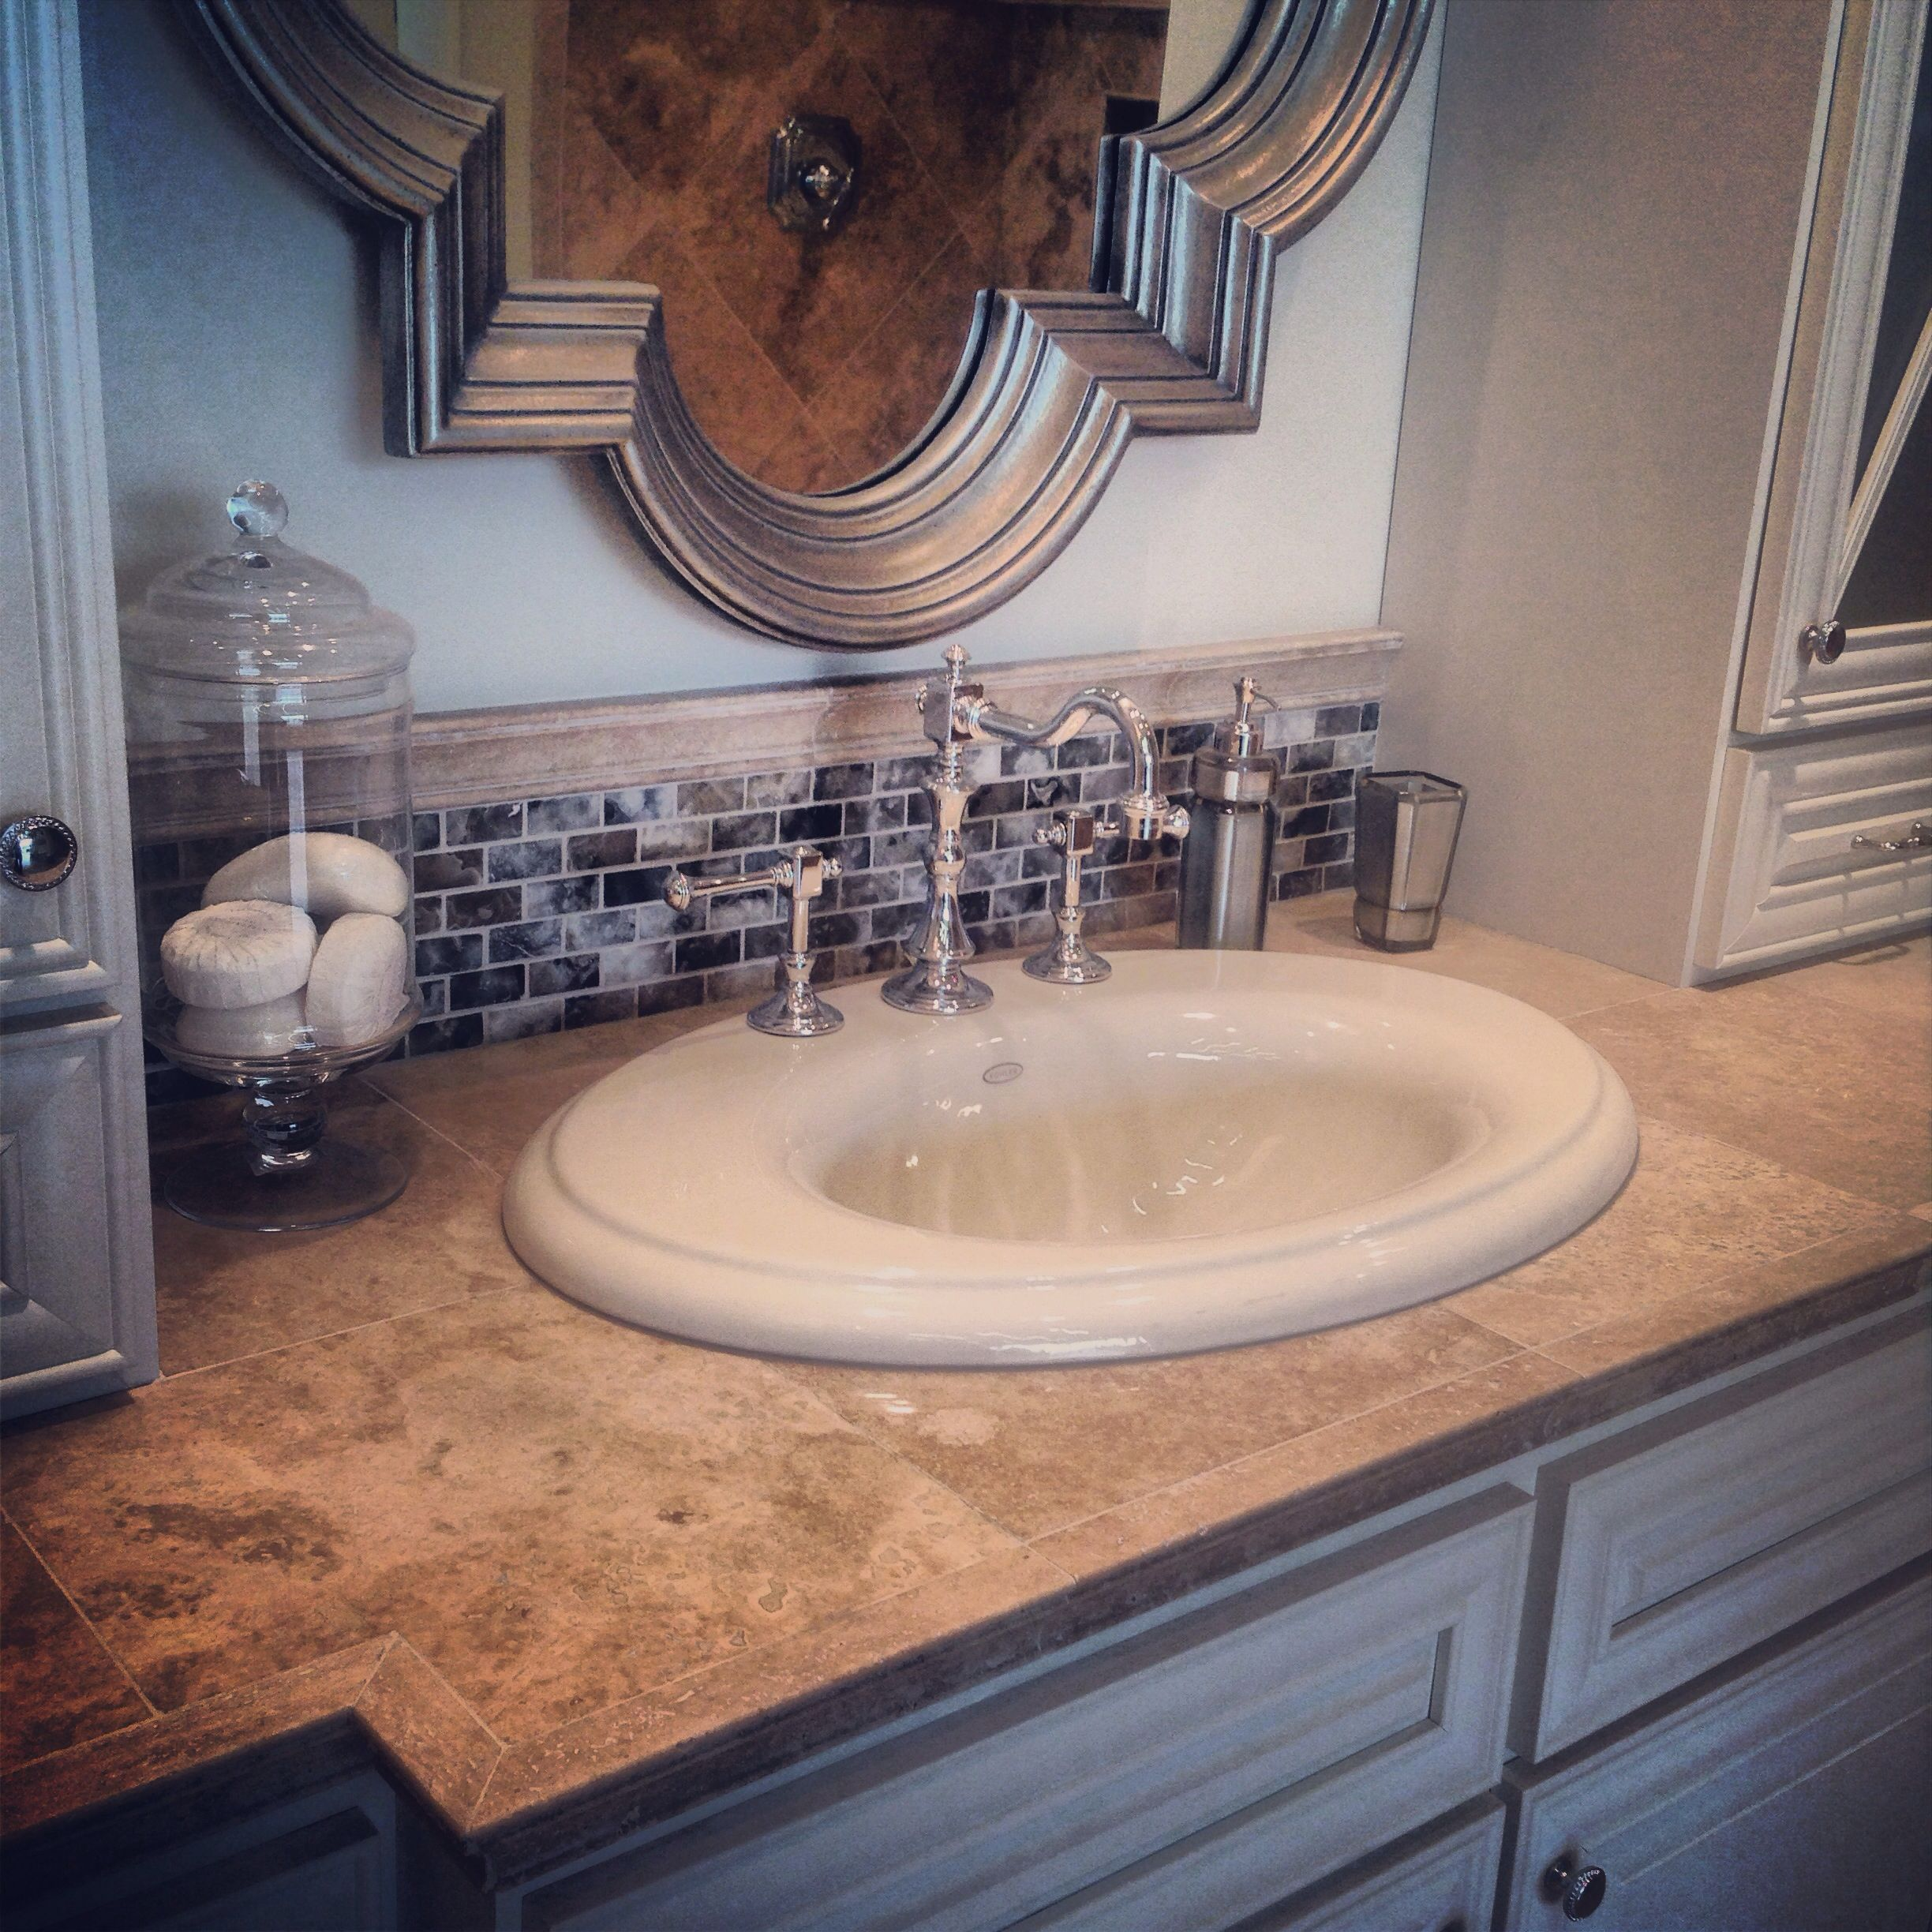 Travertine Countertop Care Travertine Tile Countertop For The Vanity Thetileshop